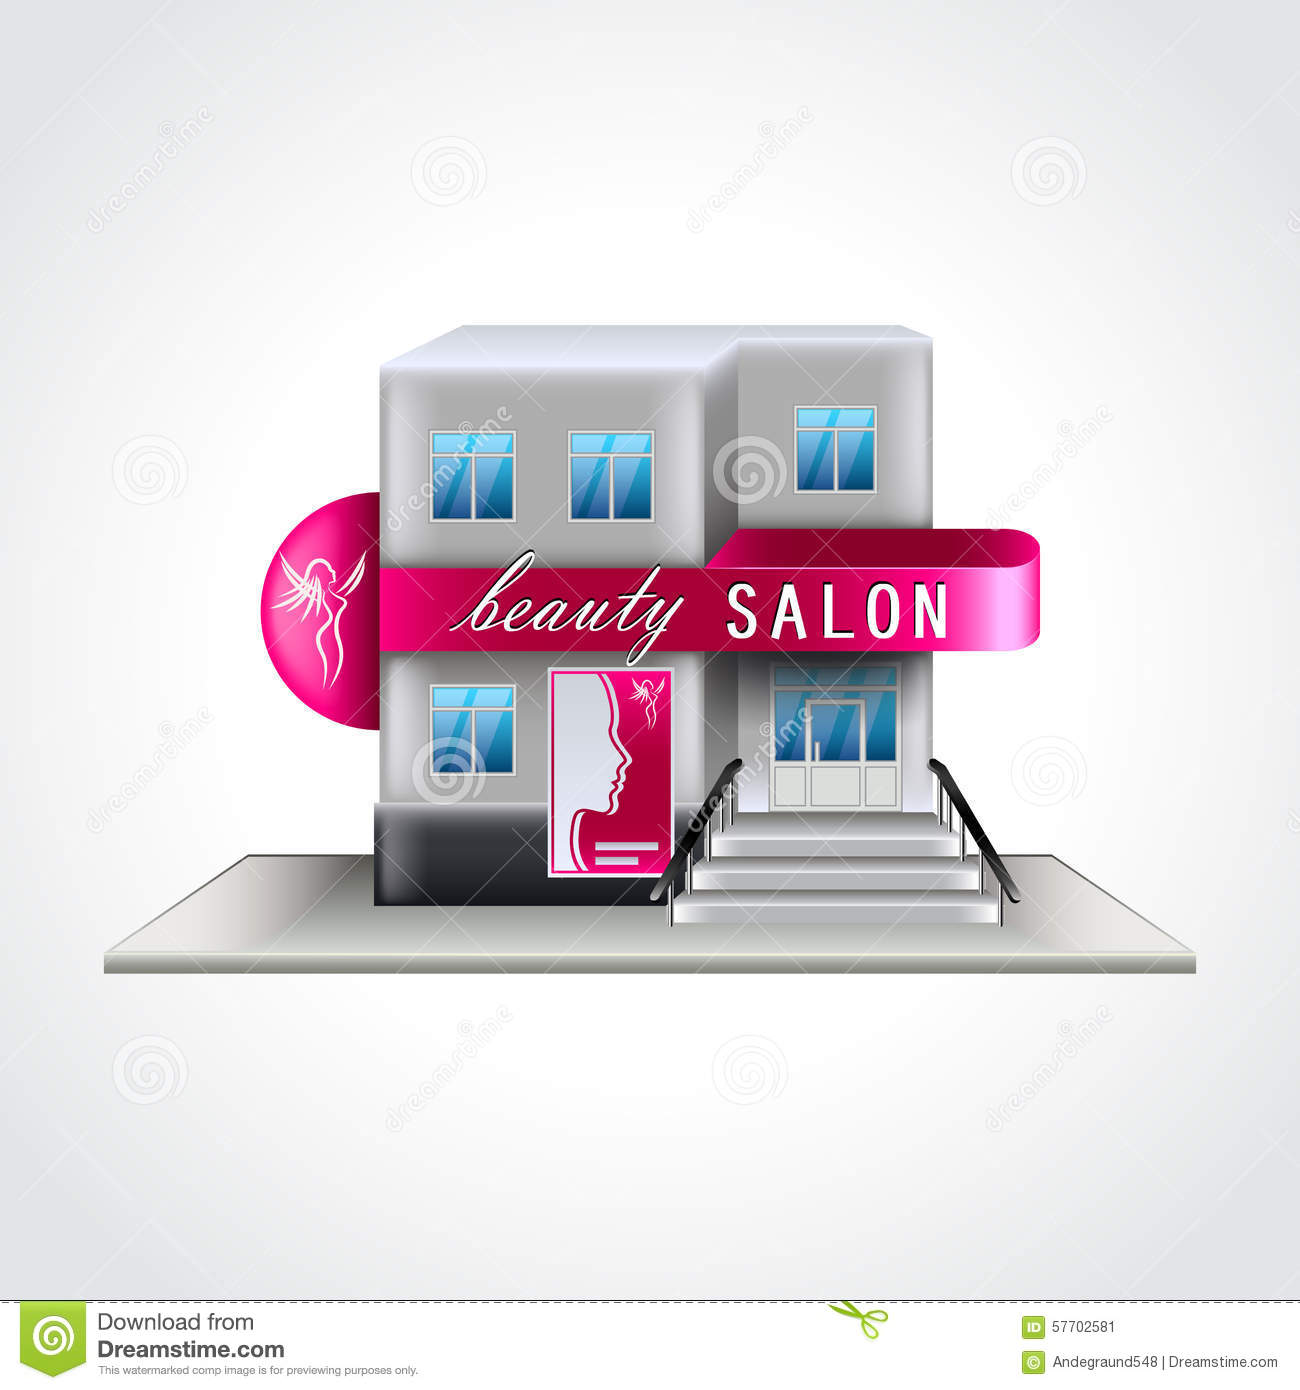 Beauty Salon Building Vector Illustration